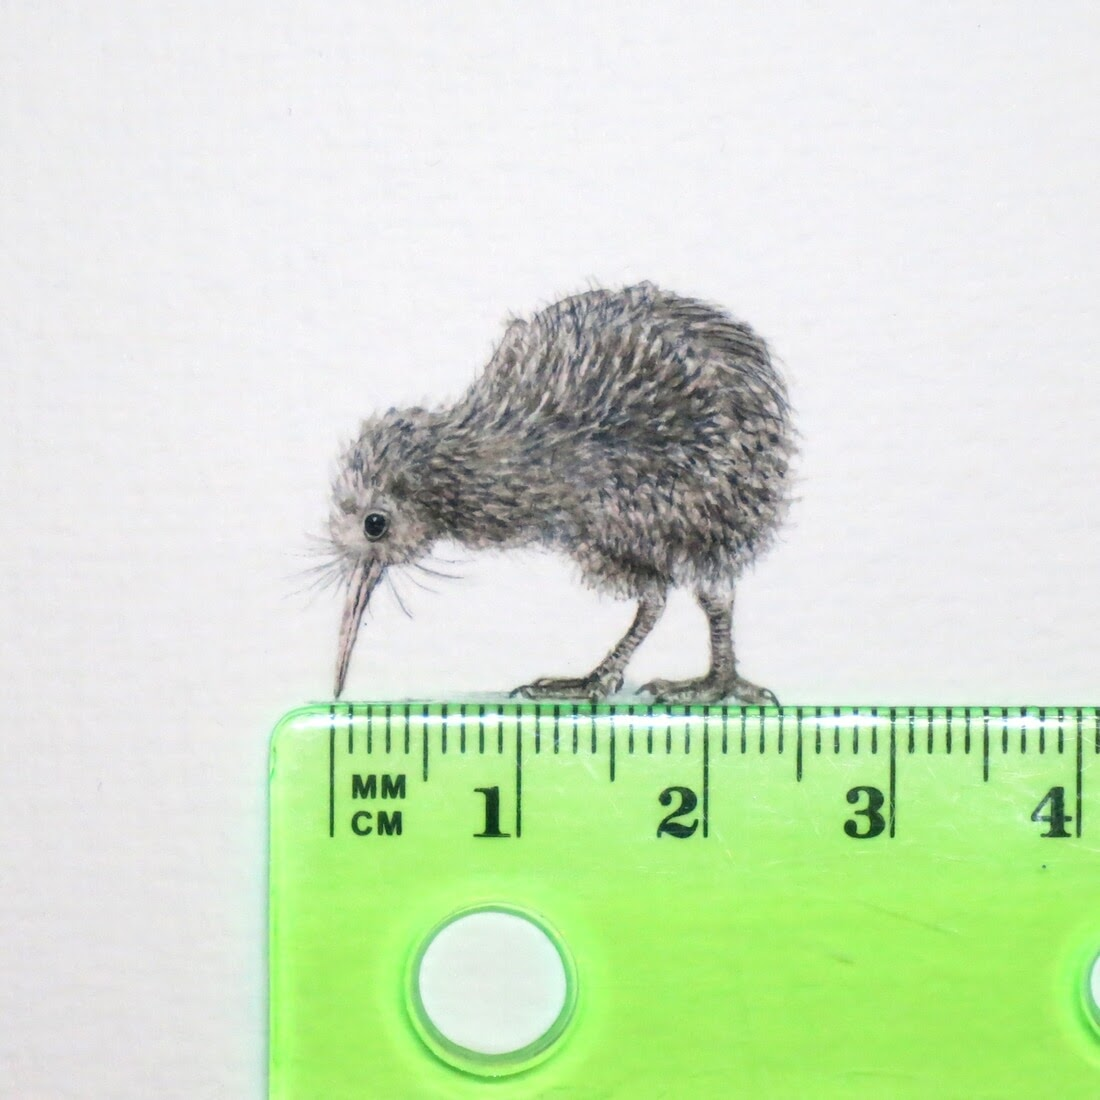 11-Kiwi-Frank Holzenburg Miniature Drawings and Paintings of Animals-www-designstack-co